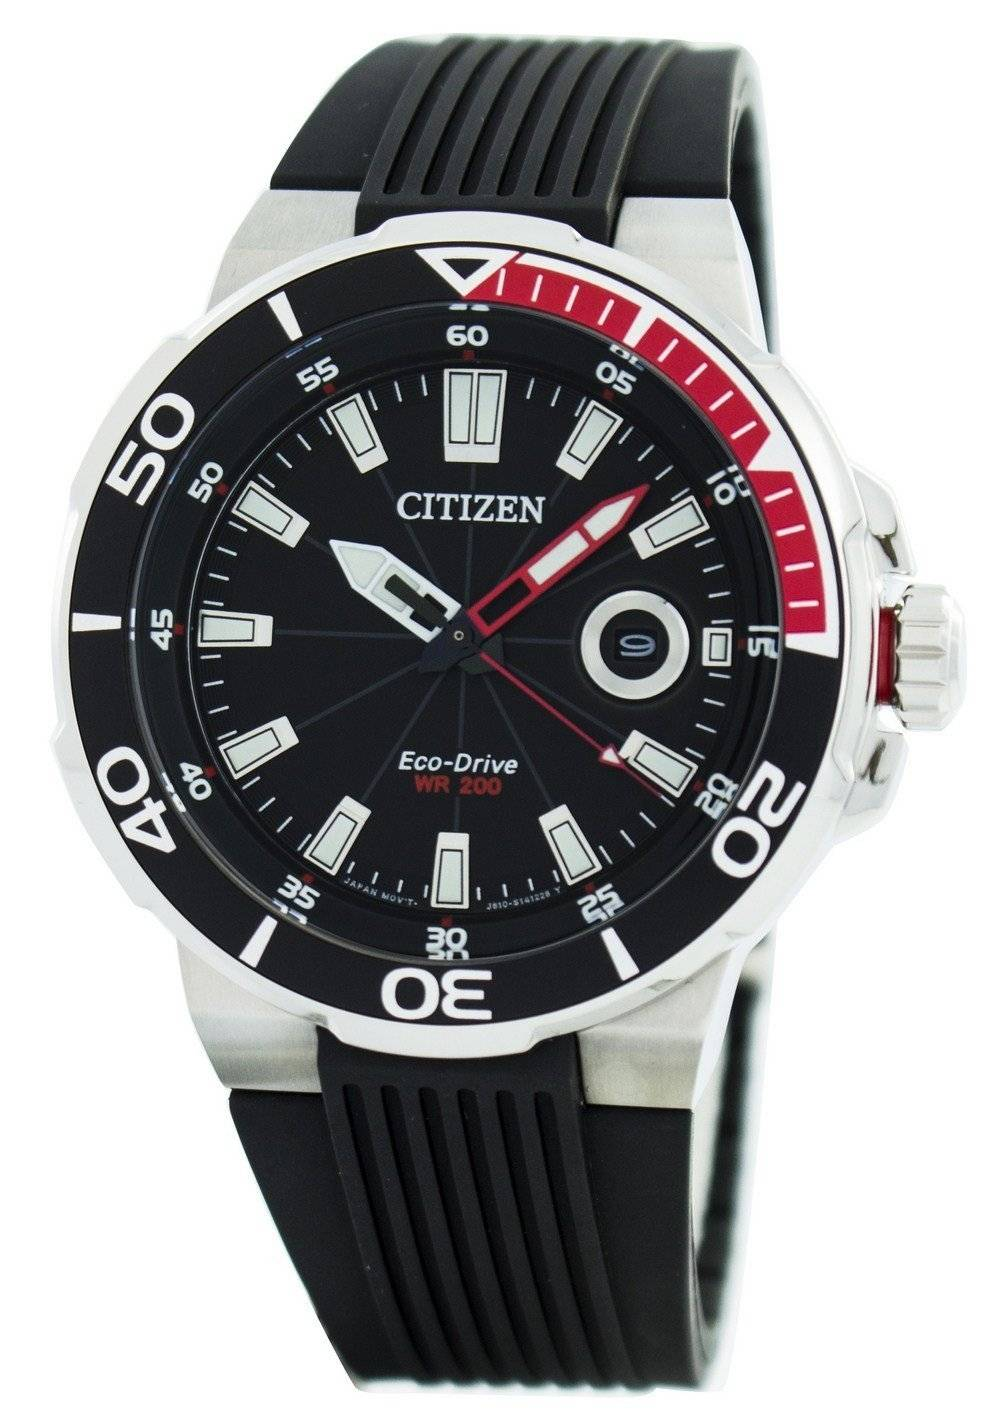 d3dcdddde96 Citizen eco drive divers m jpg 1000x1420 Citizen eco drive divers 200m 740